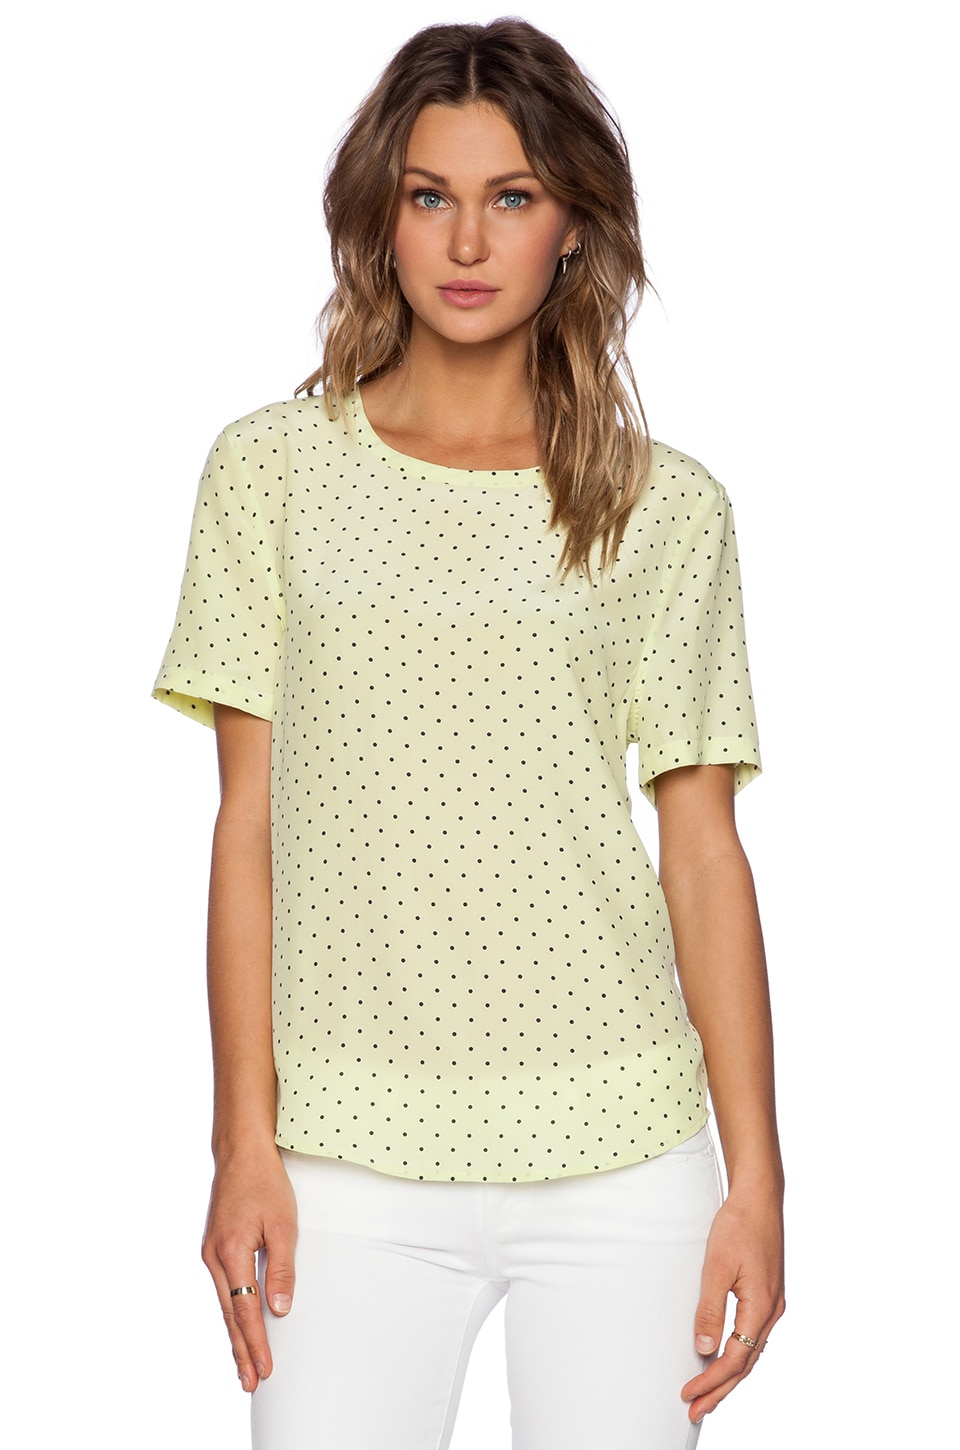 Equipment Riley Uniform Dot Tee in Lemongrass